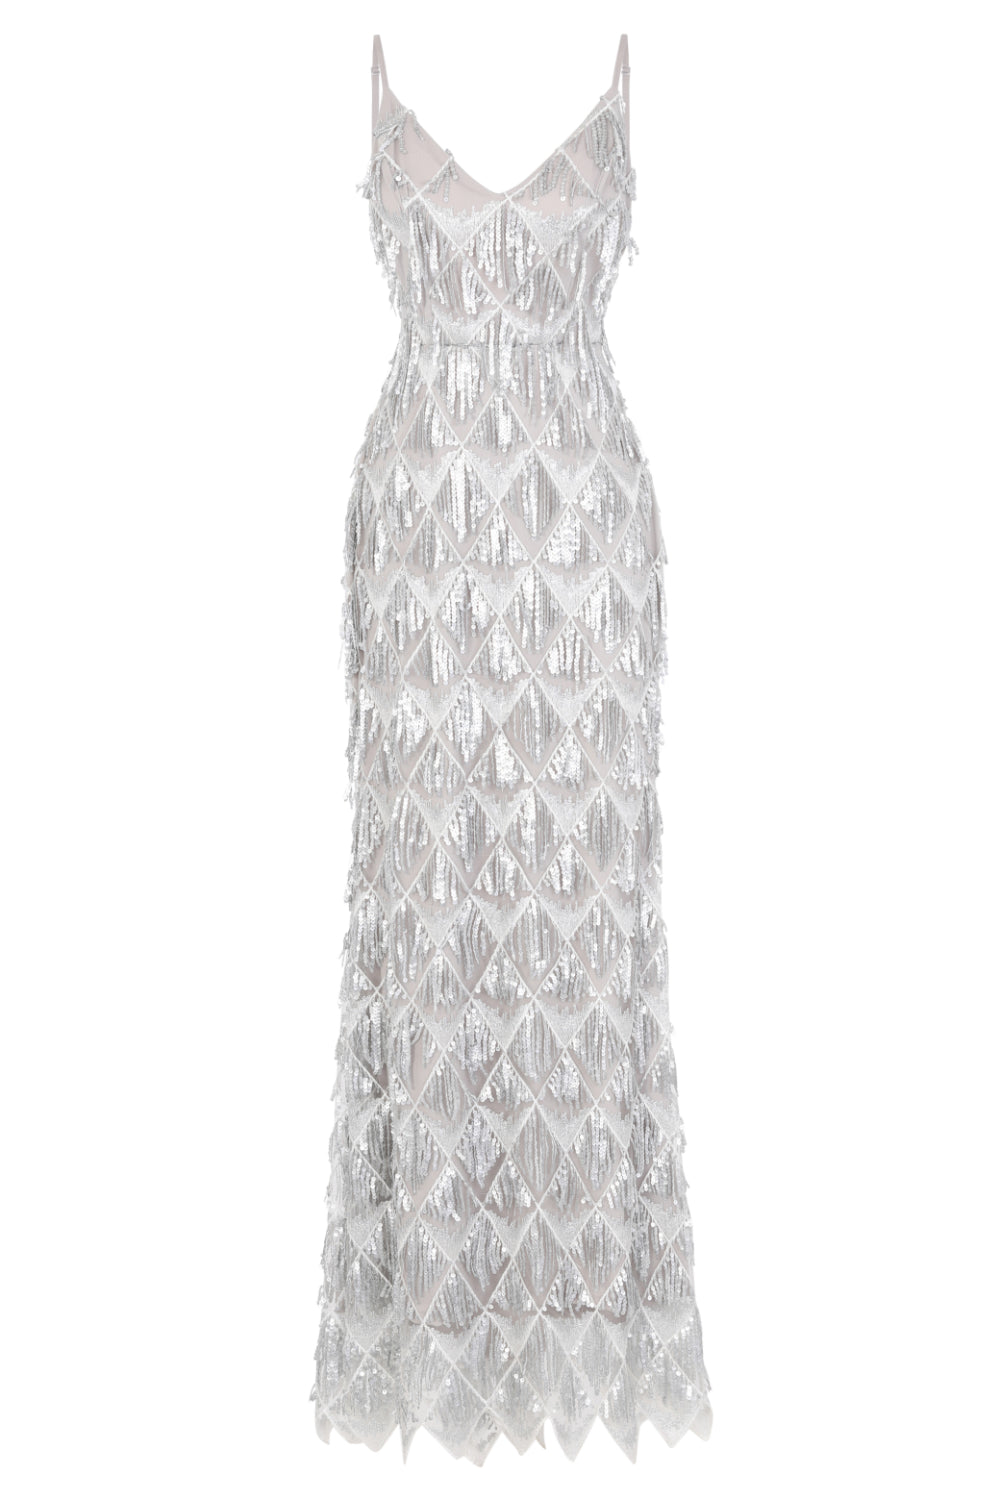 Serenity Silver Ombre Sequin Tassel Fringe Backless Mermaid Dress